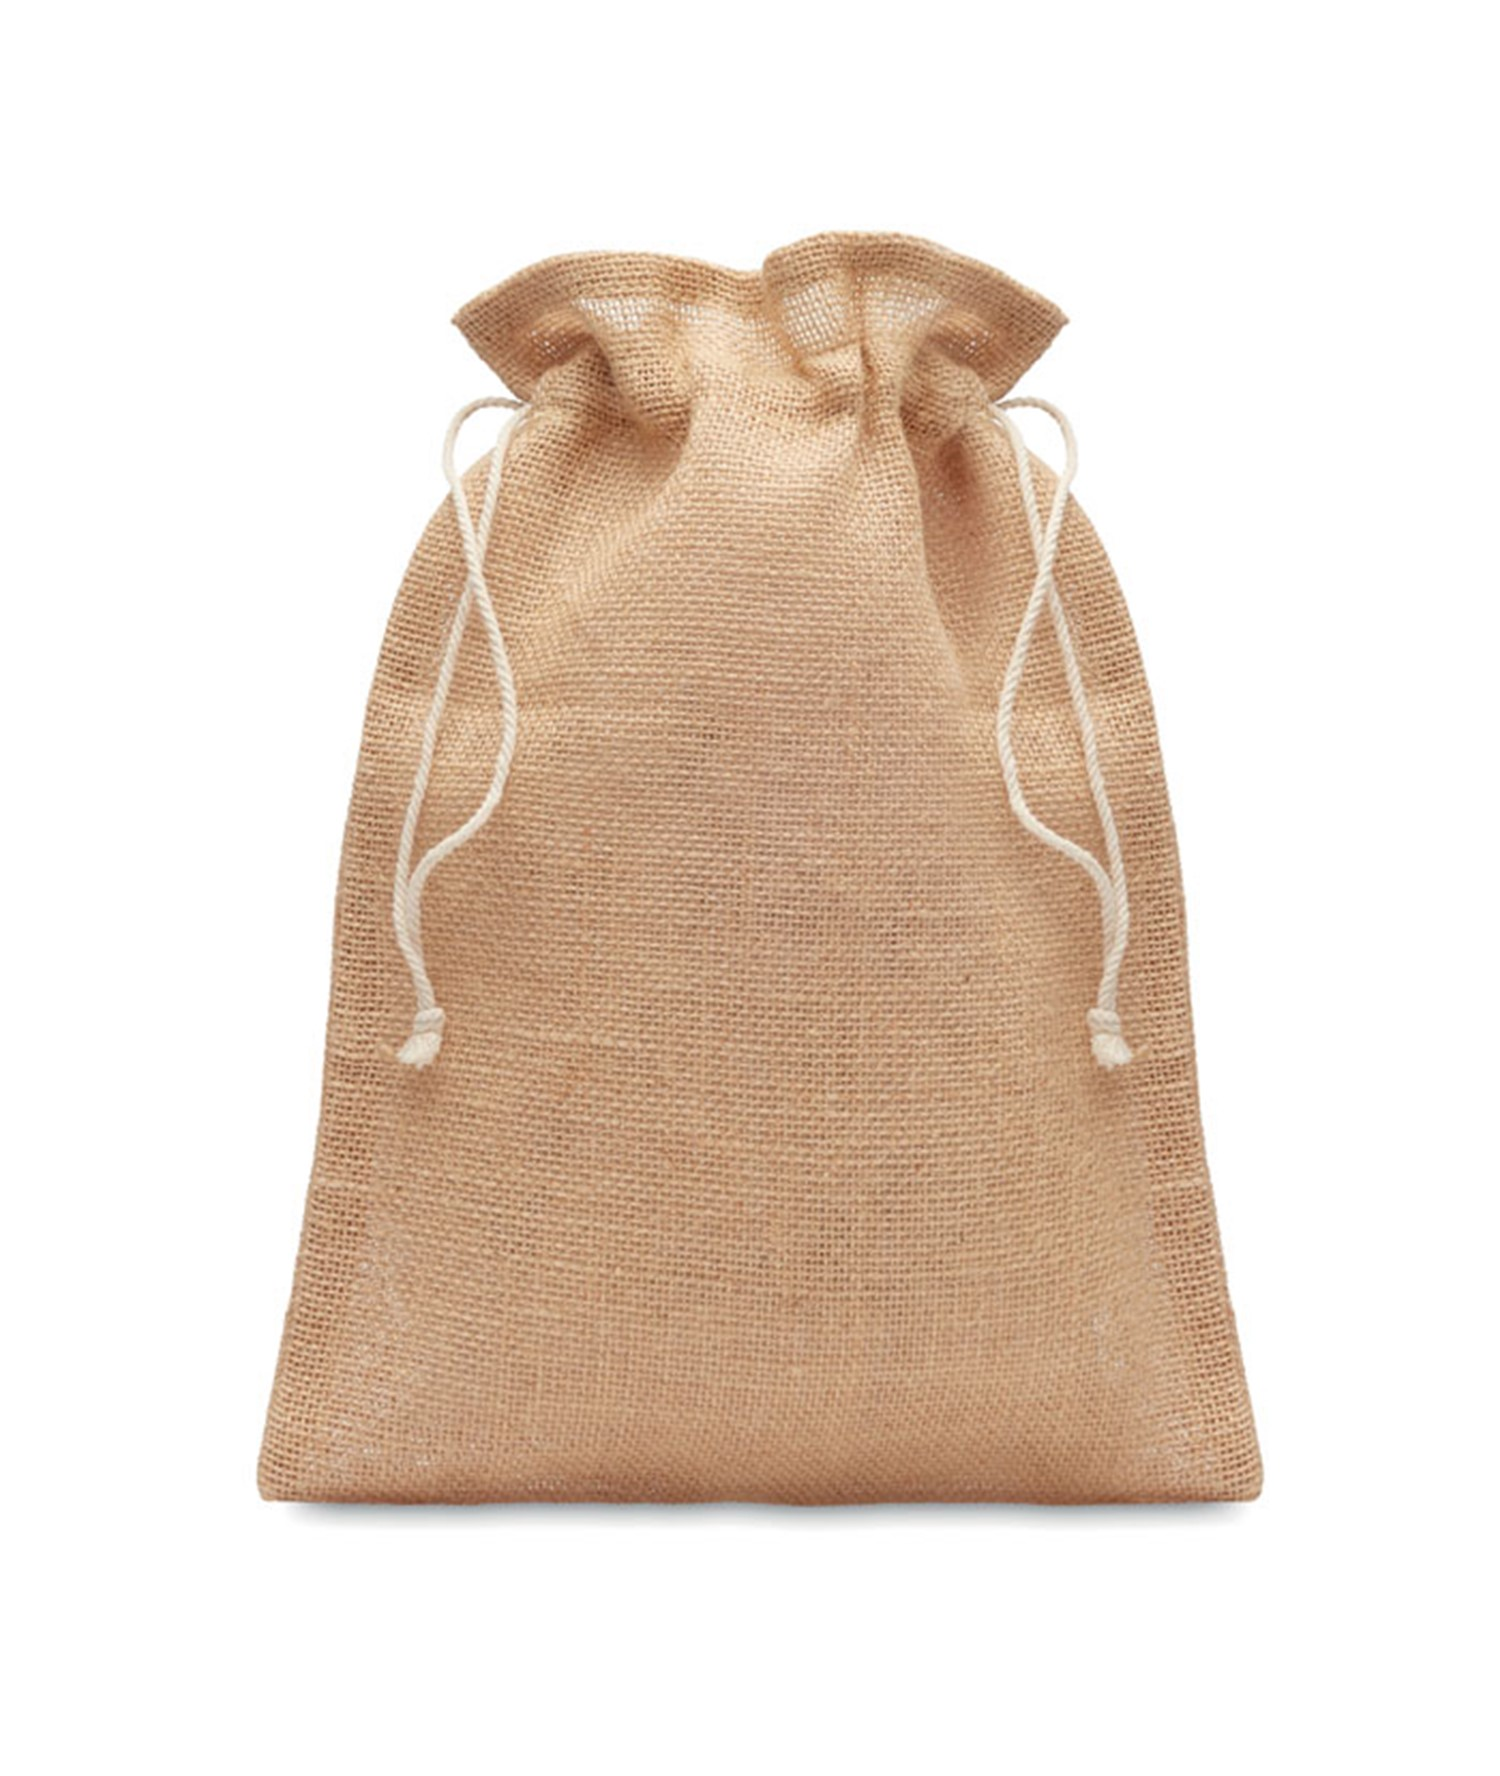 JUTE MEDIUM - MEDIUM JUTE GIFT BAG 25 X 32CM